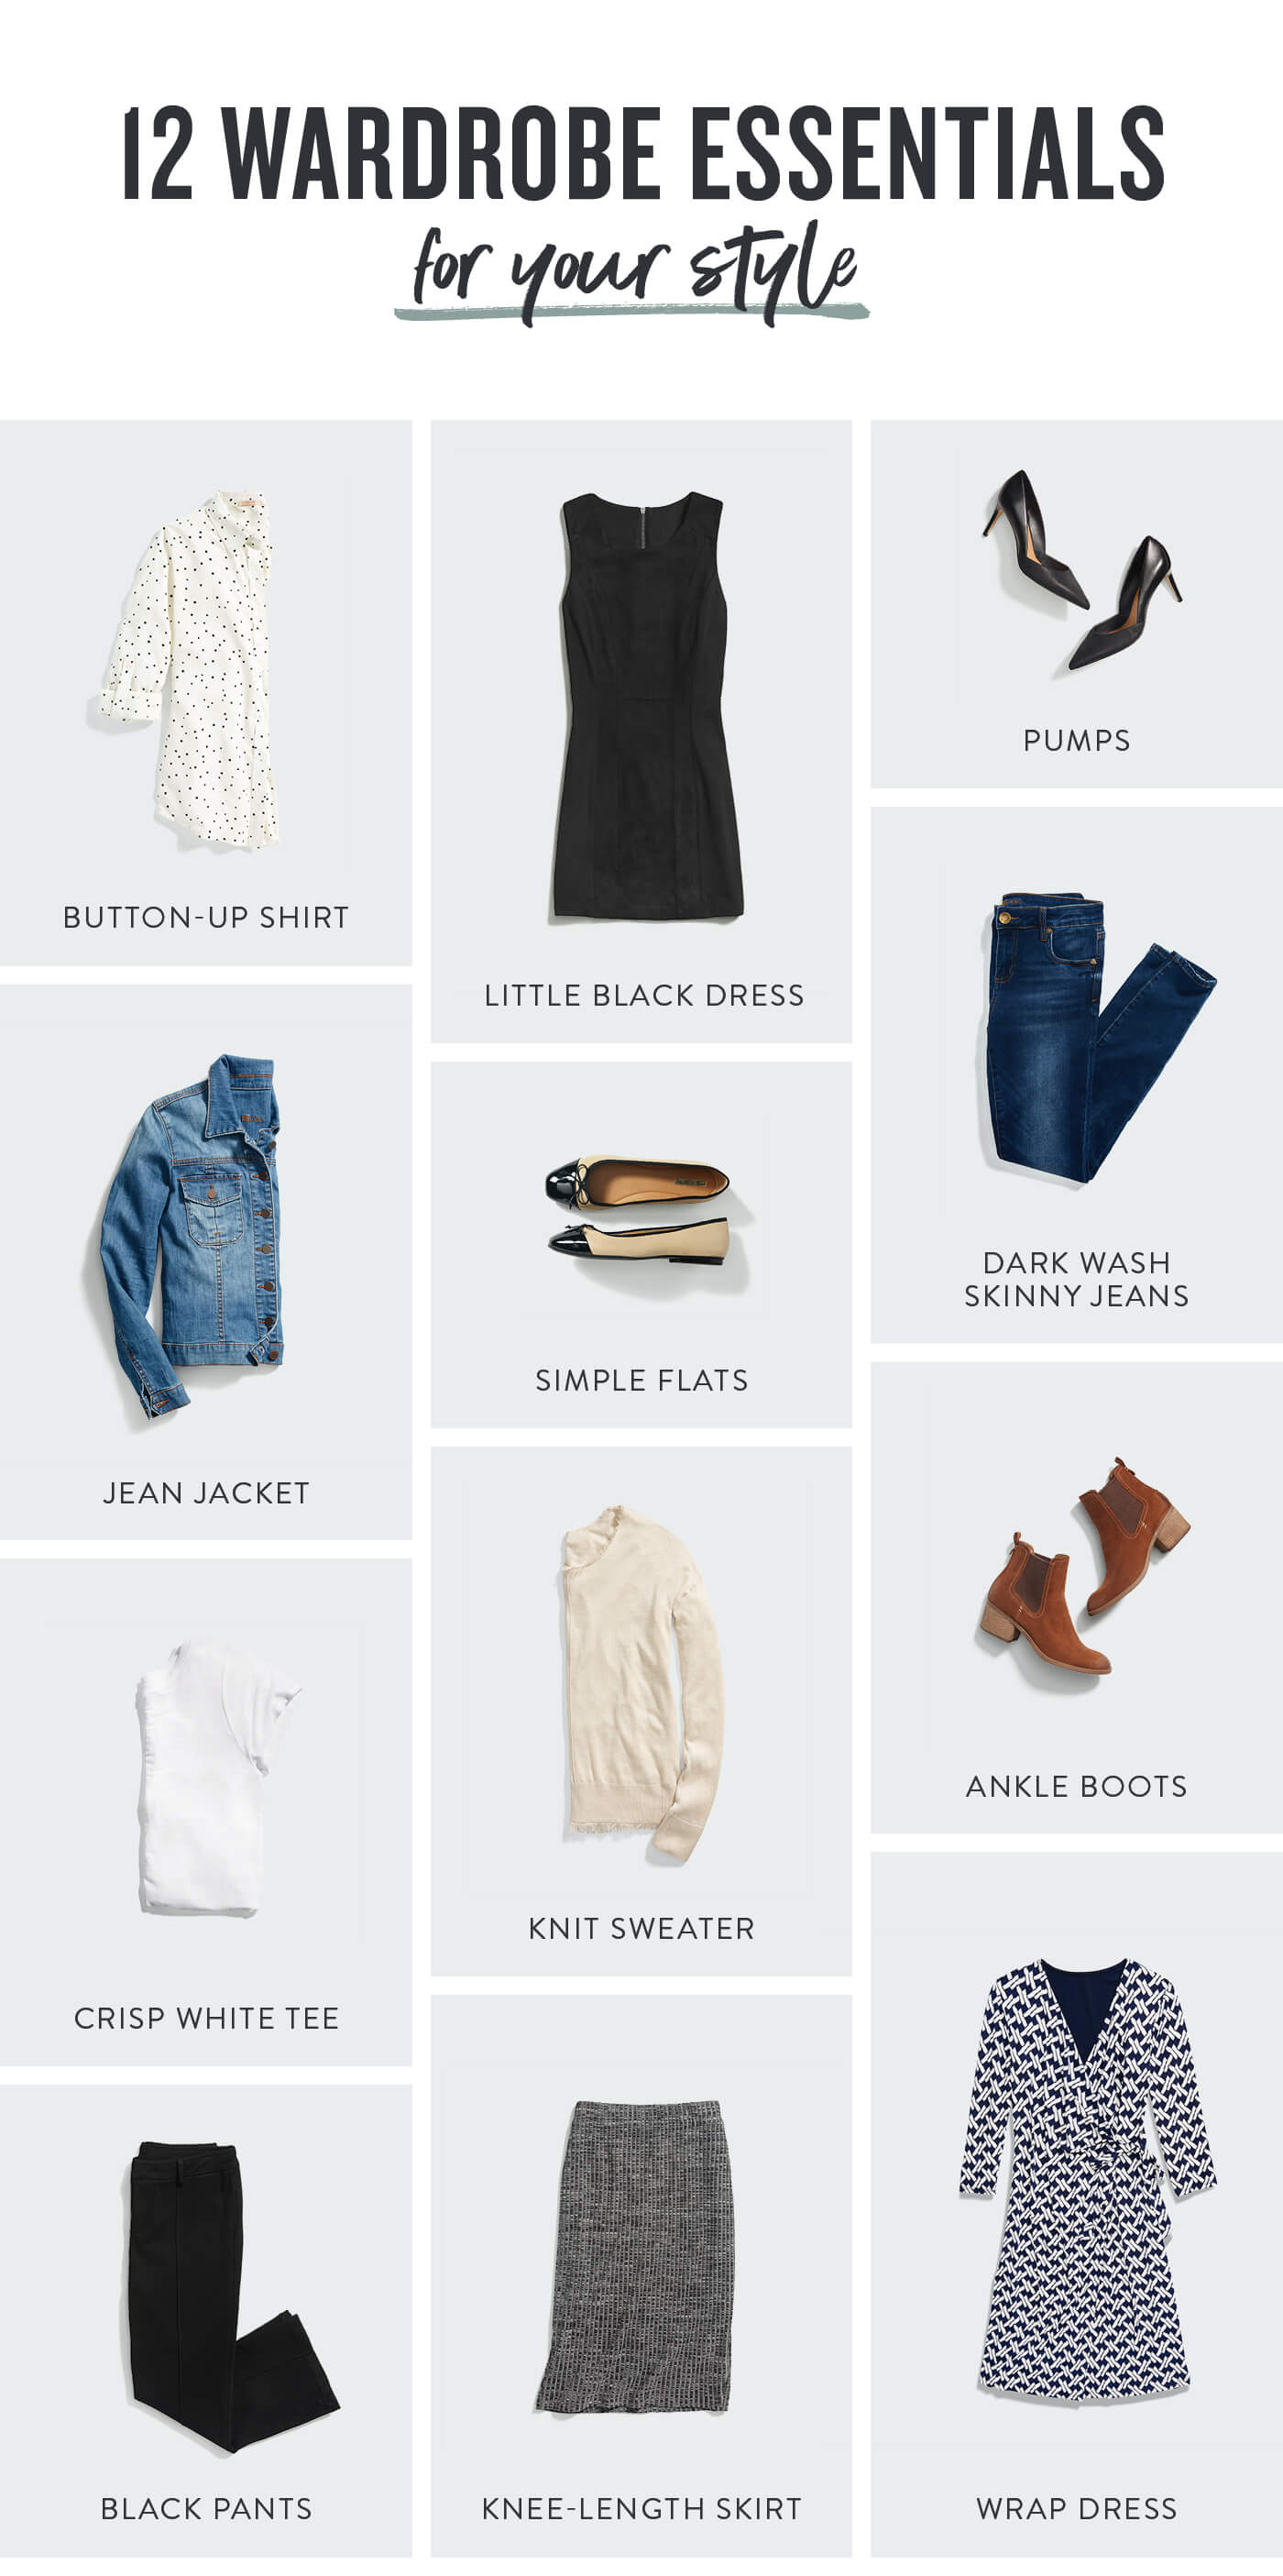 e5eb0823fab1 12 Wardrobe Essentials for Your Lifestyle